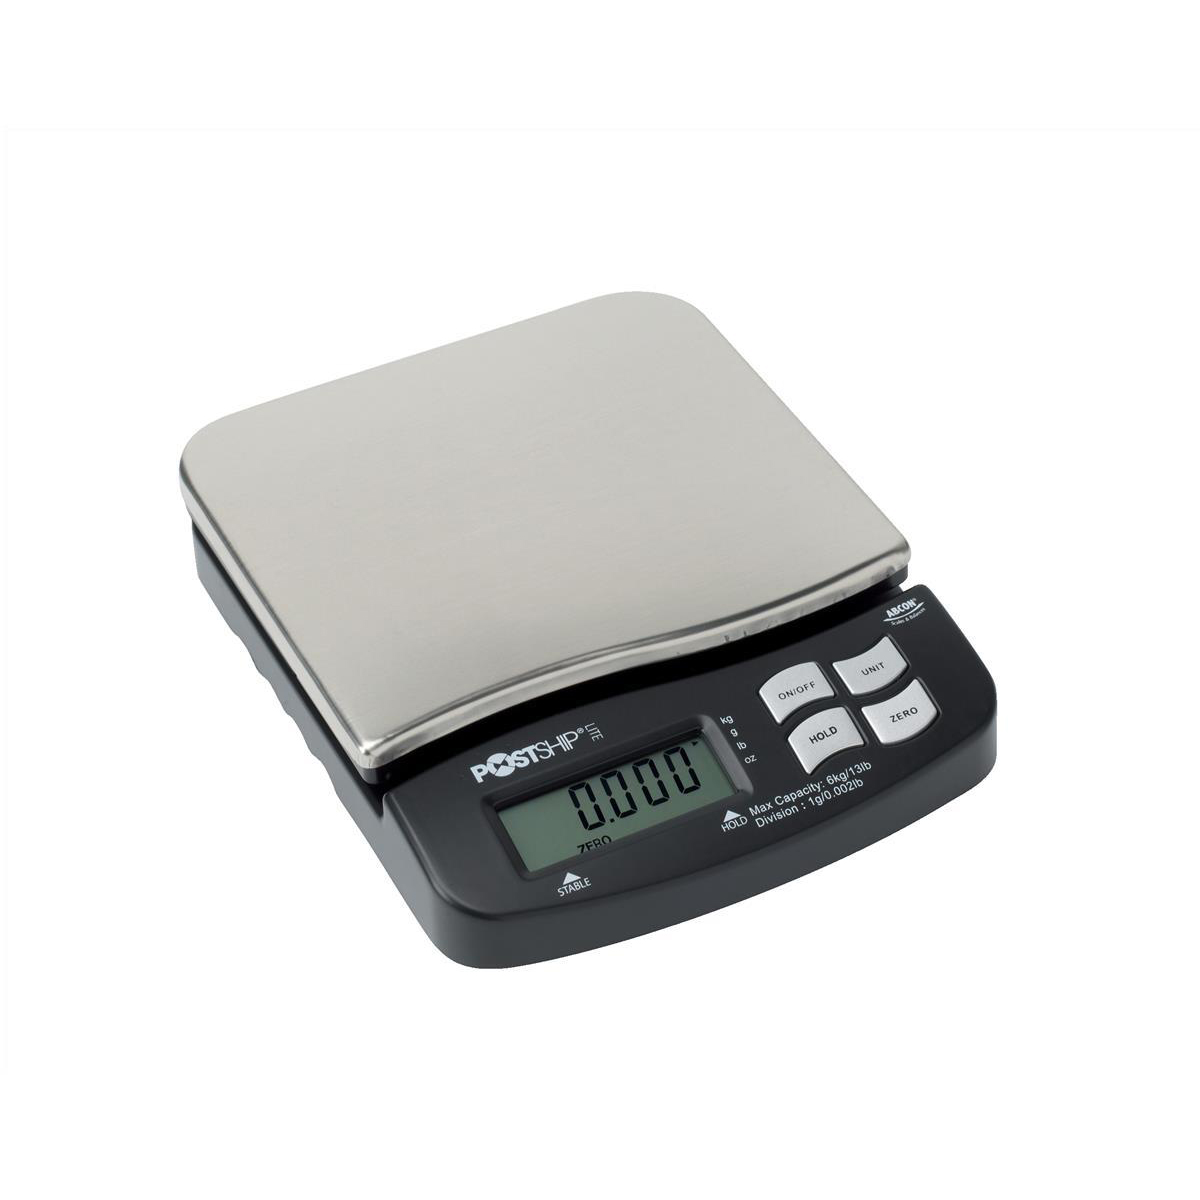 Image for Postship Lite Scale 1g Increments Capacity 6kg Display Chrome and Black Ref PSL60